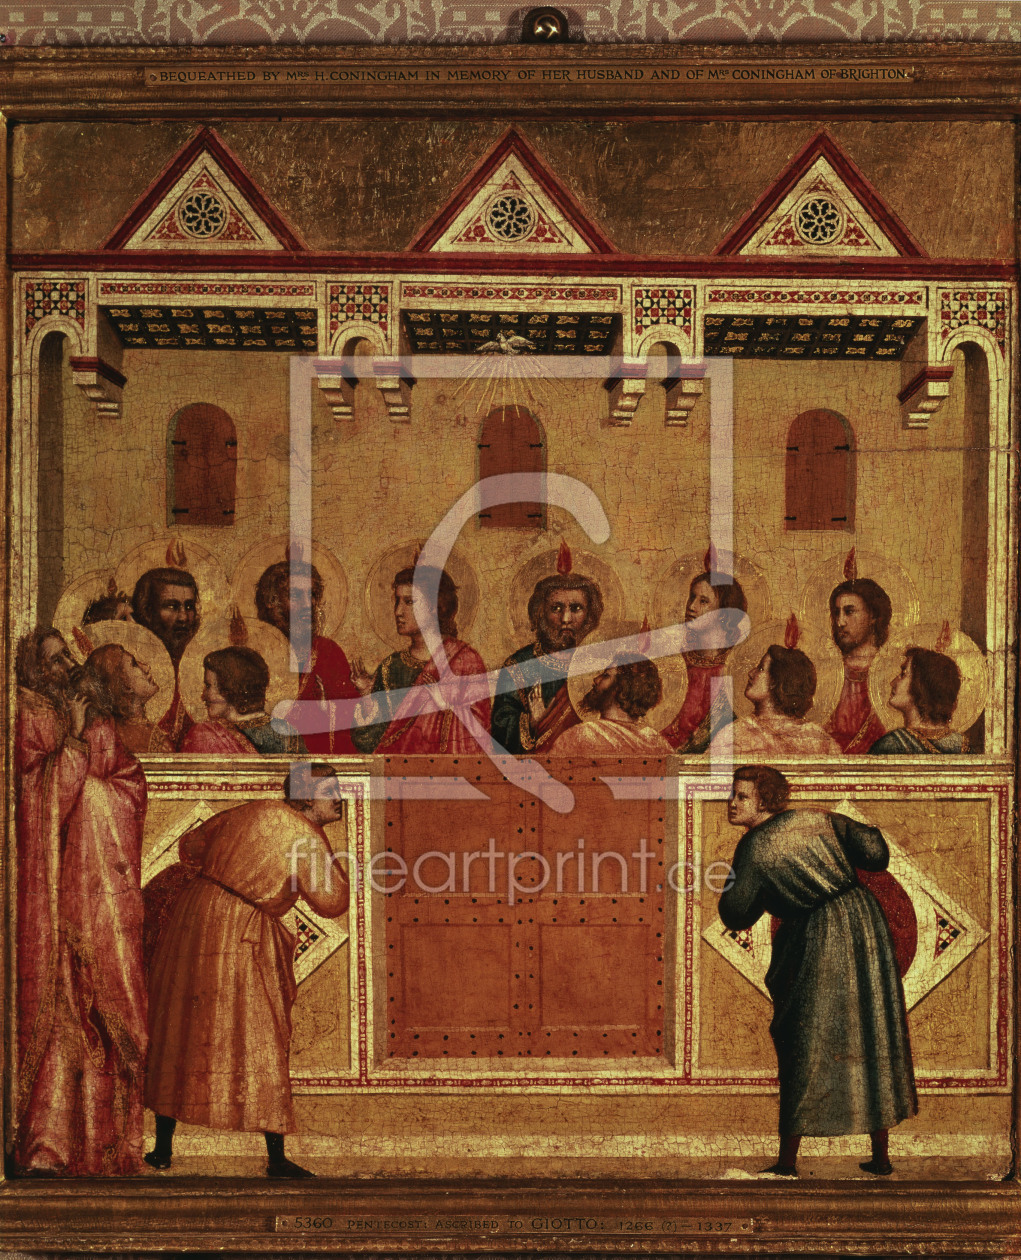 Bild-Nr.: 30001100 Outpouring of the Holy Spirit / Giotto erstellt von Giotto di Bondone